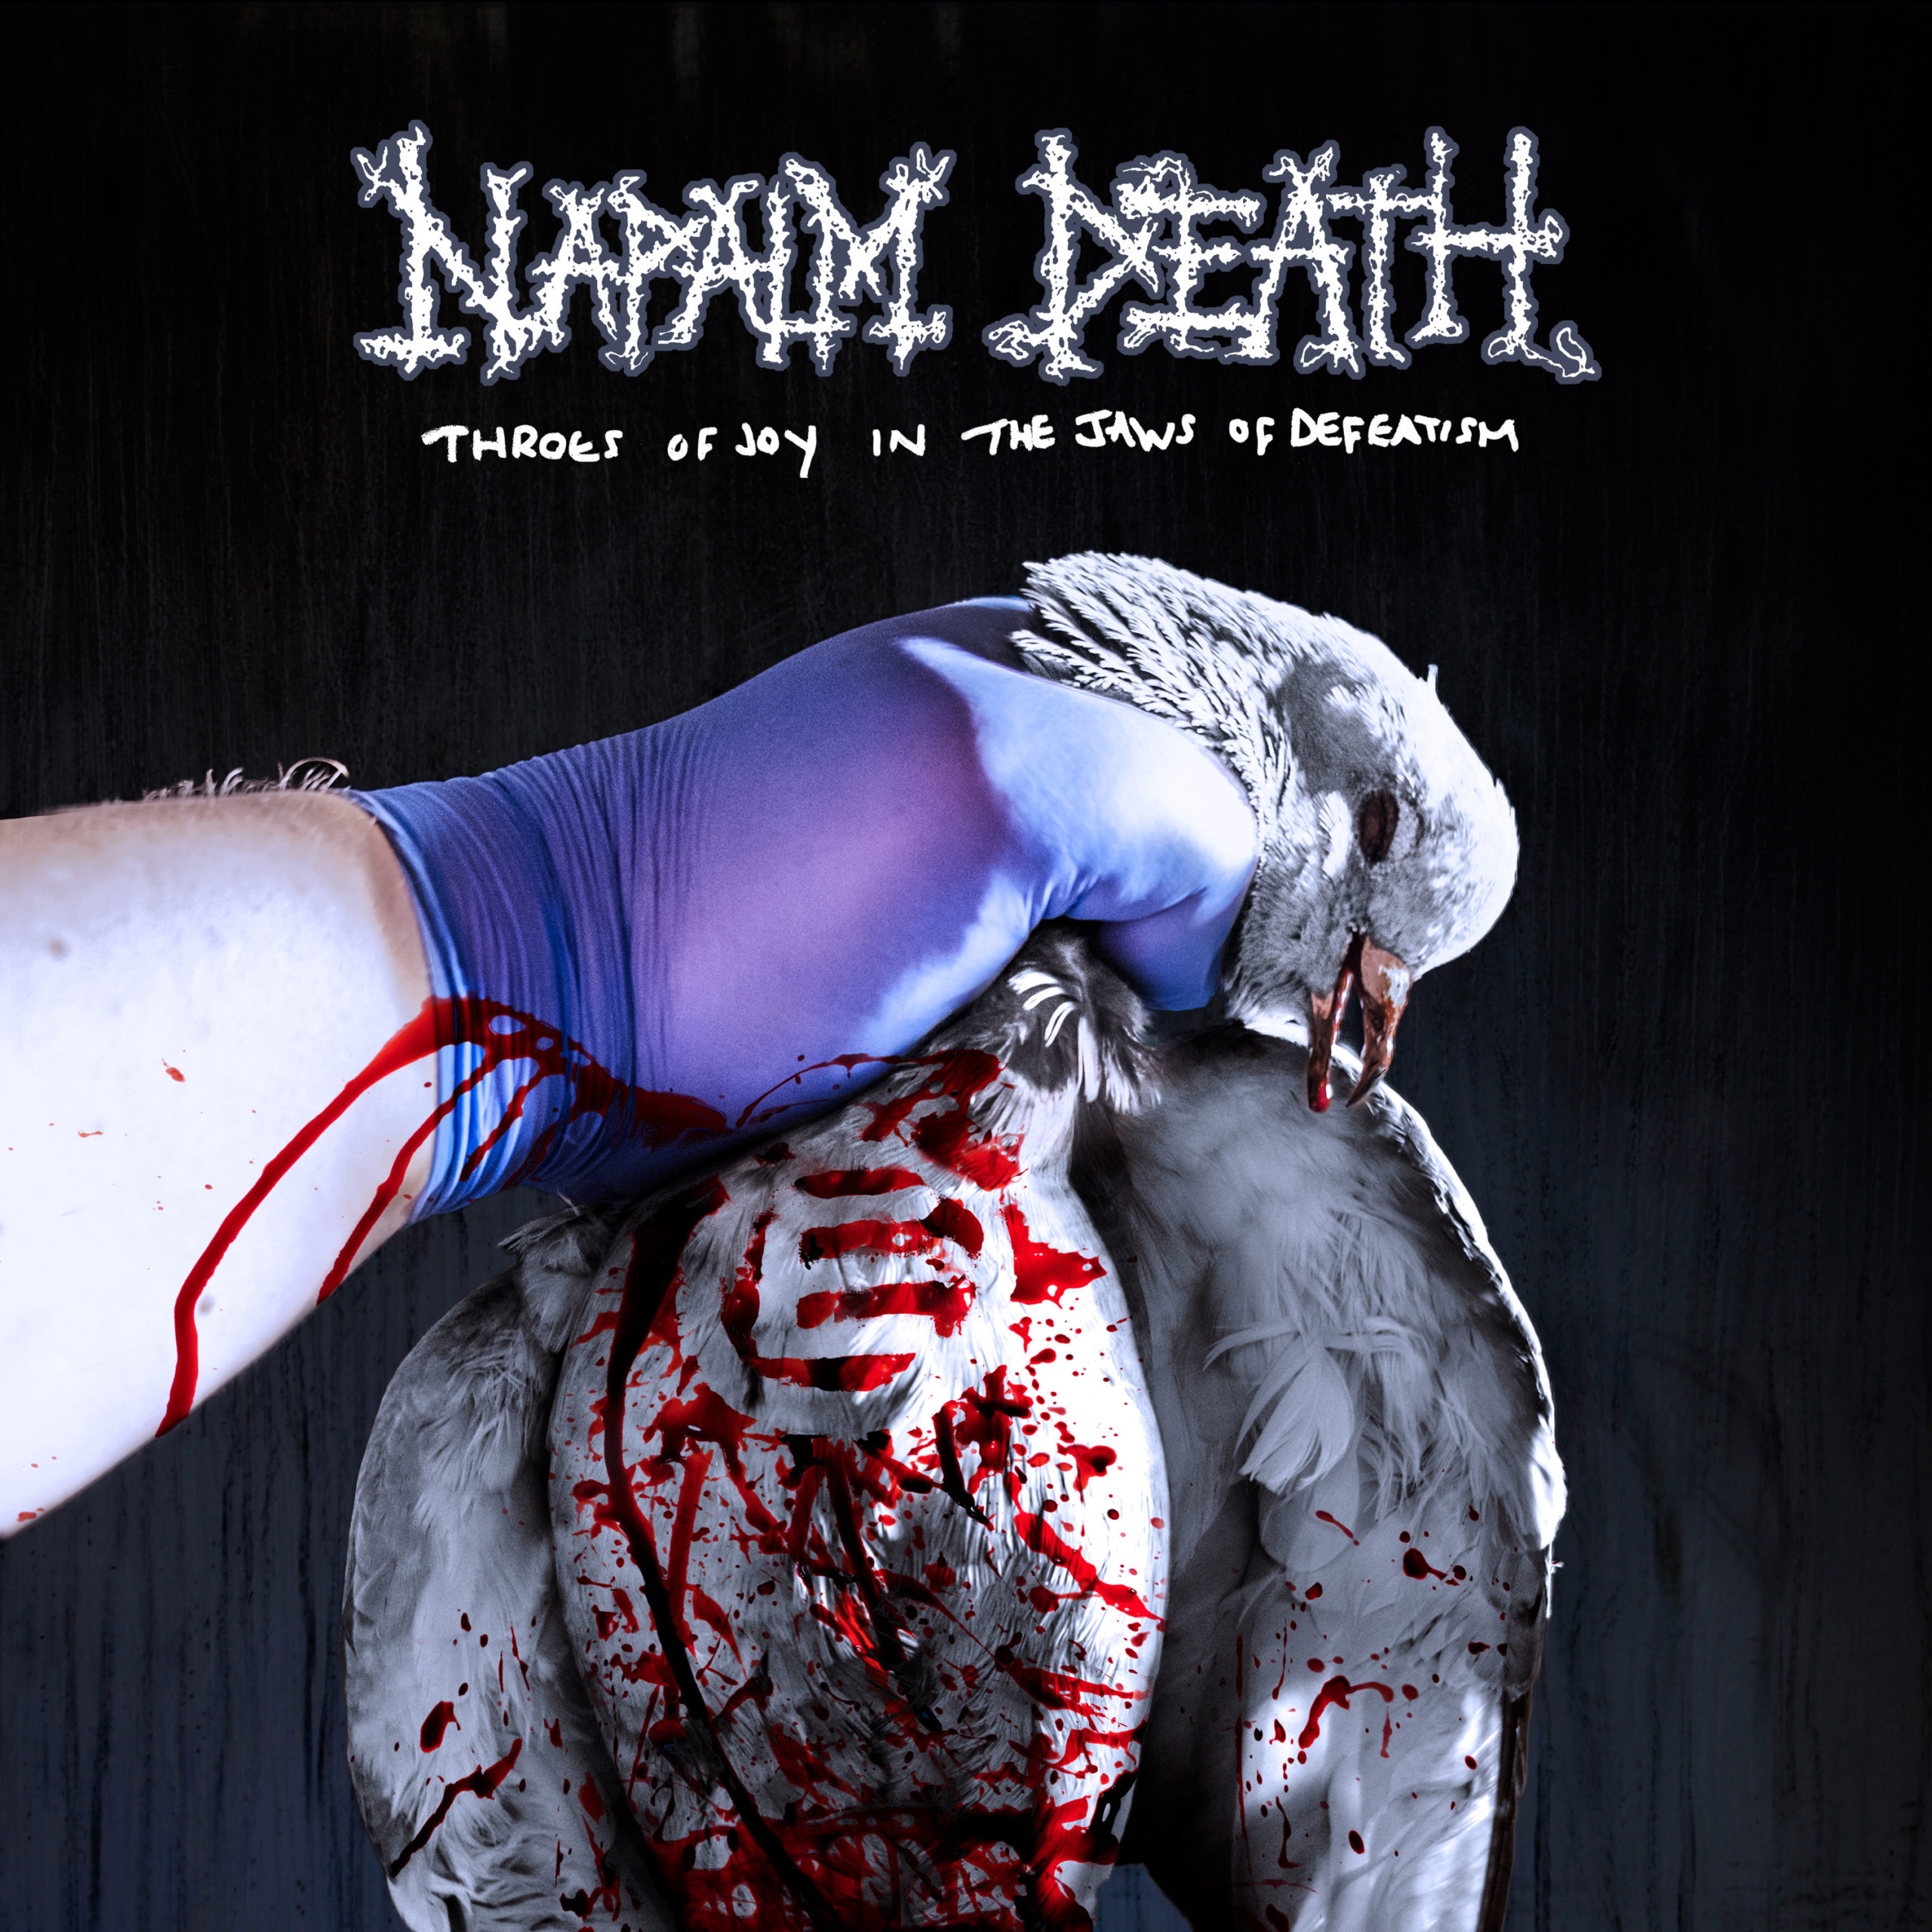 eath throes of joy in the jaws of defeatism du groupe napalm death